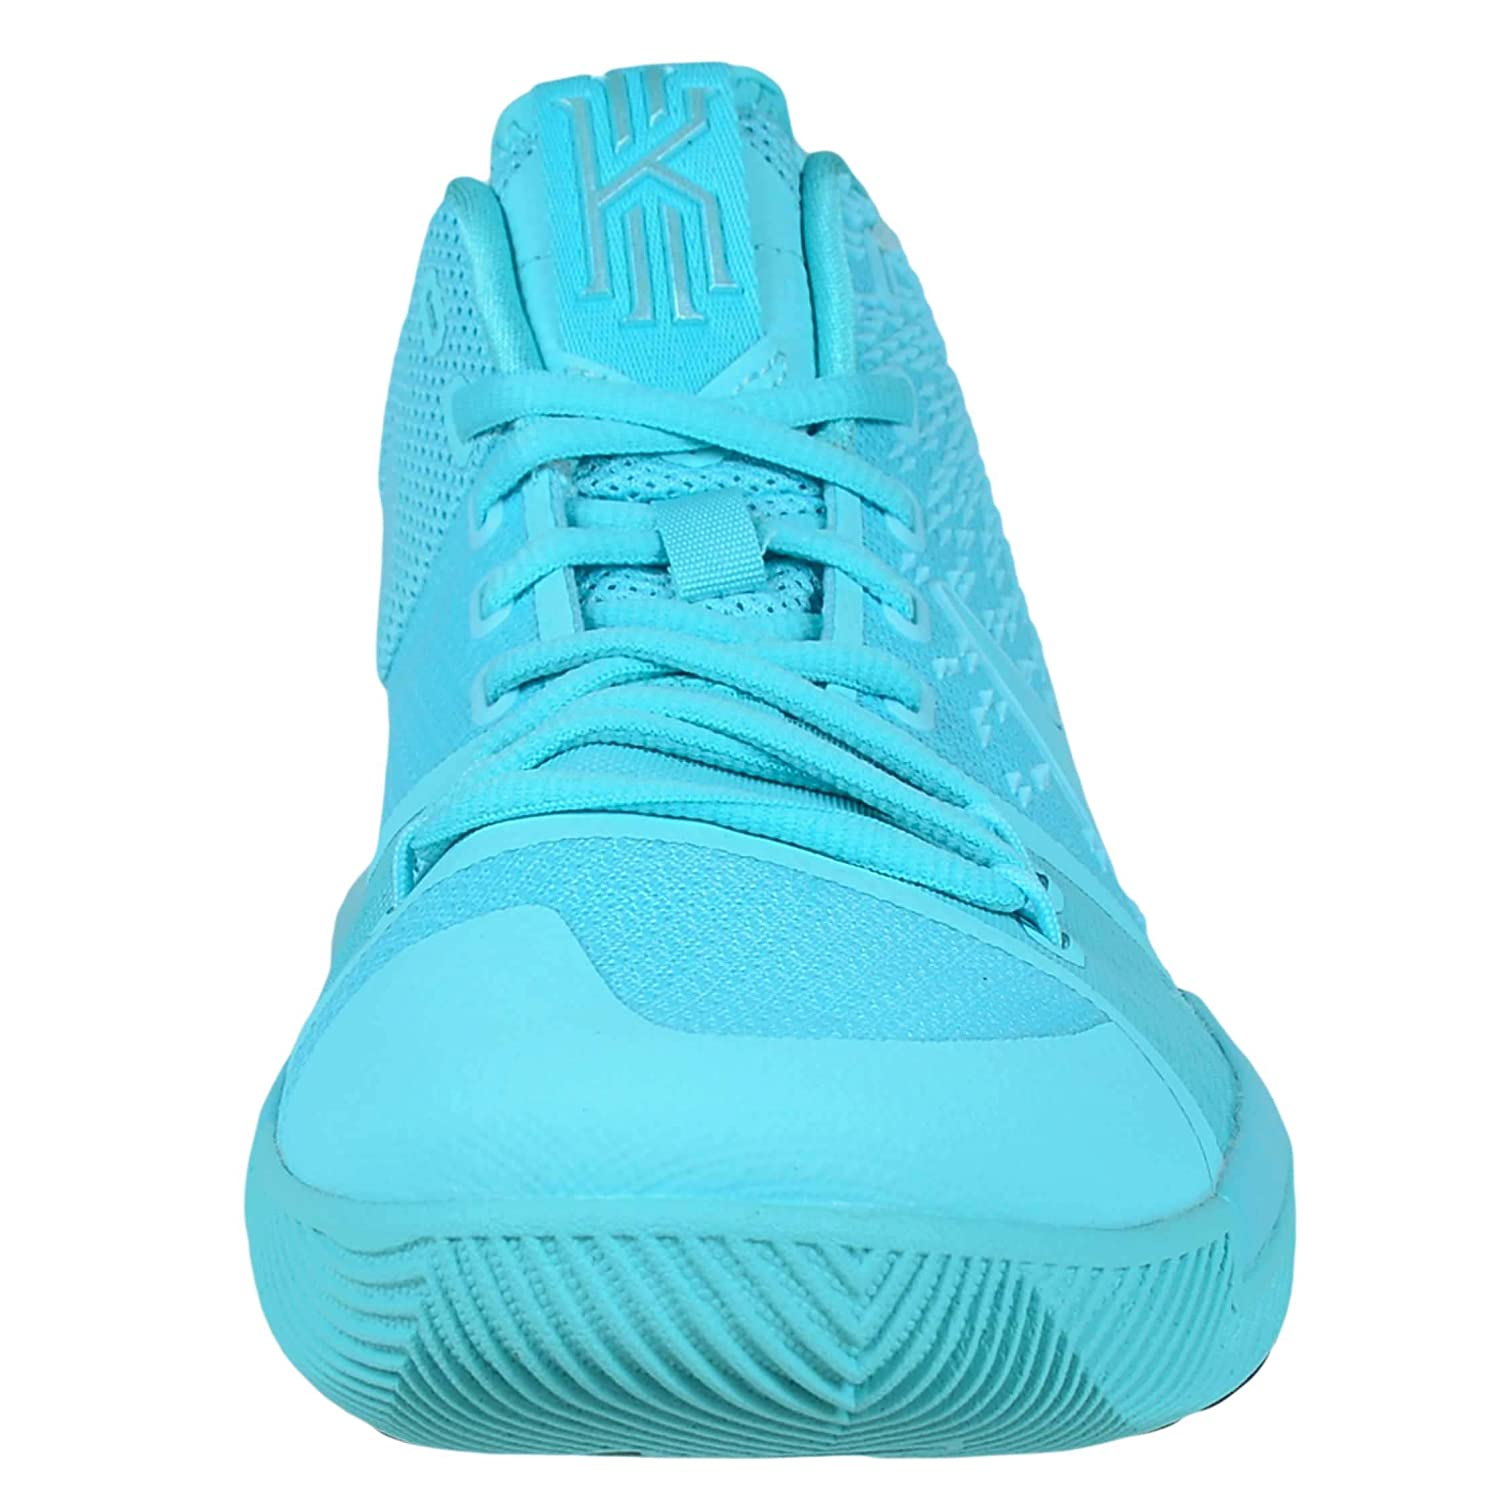 differently 93ac9 4ceb1 Nike Kyrie 3 Men s Basketball Shoes Aqua Aqua-Black 852395-401 (10.5 D(M)  US)  Buy Online at Low Prices in India - Amazon.in